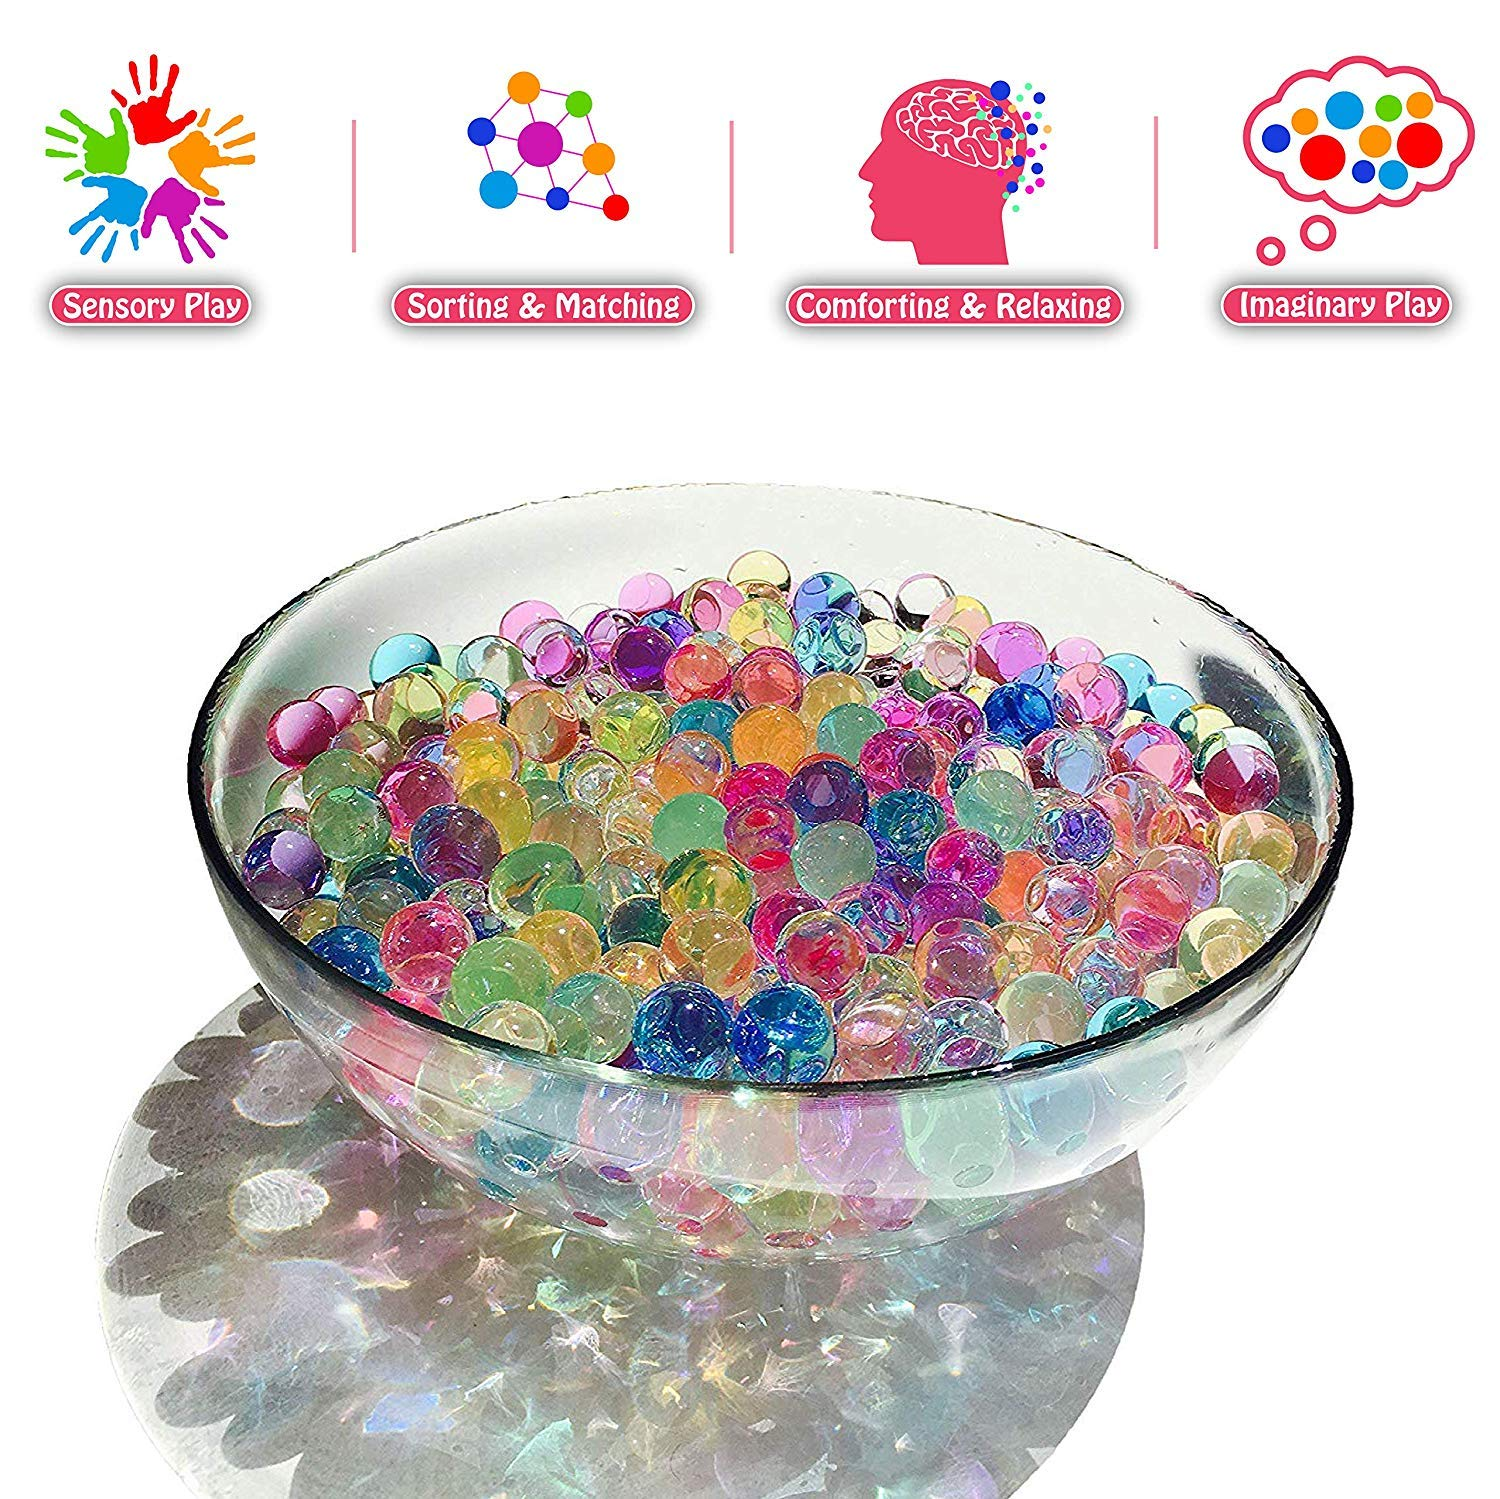 15 Ounces 0.95 pounds for Kids Sensory Play and Spa Refill Elements Trading Inc MarvelBeads Water Beads Rainbow Mix Non-Toxic